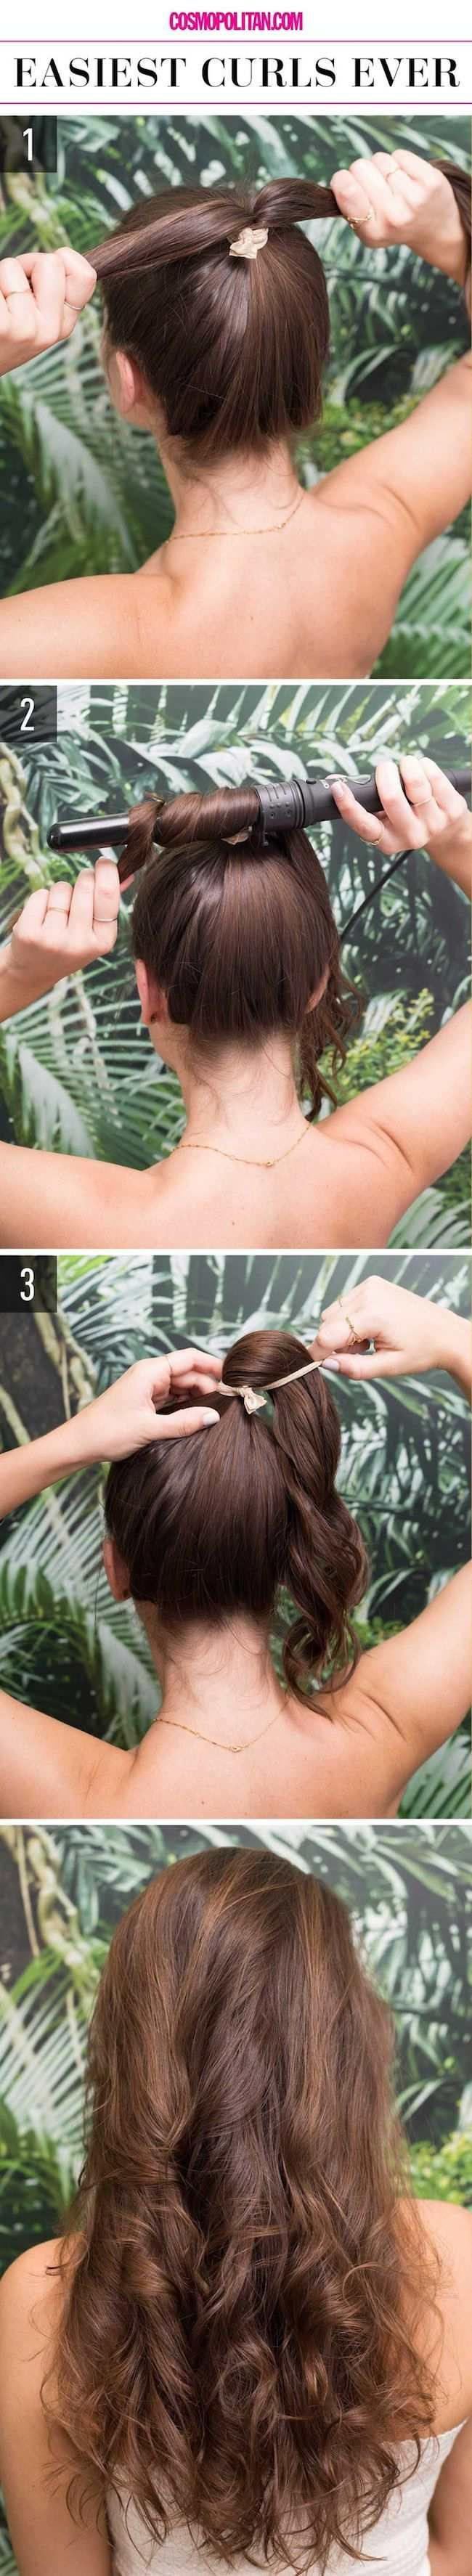 Instant beach waves, perfect destination wedding hairstyle idea! Image via Cosmopolitan